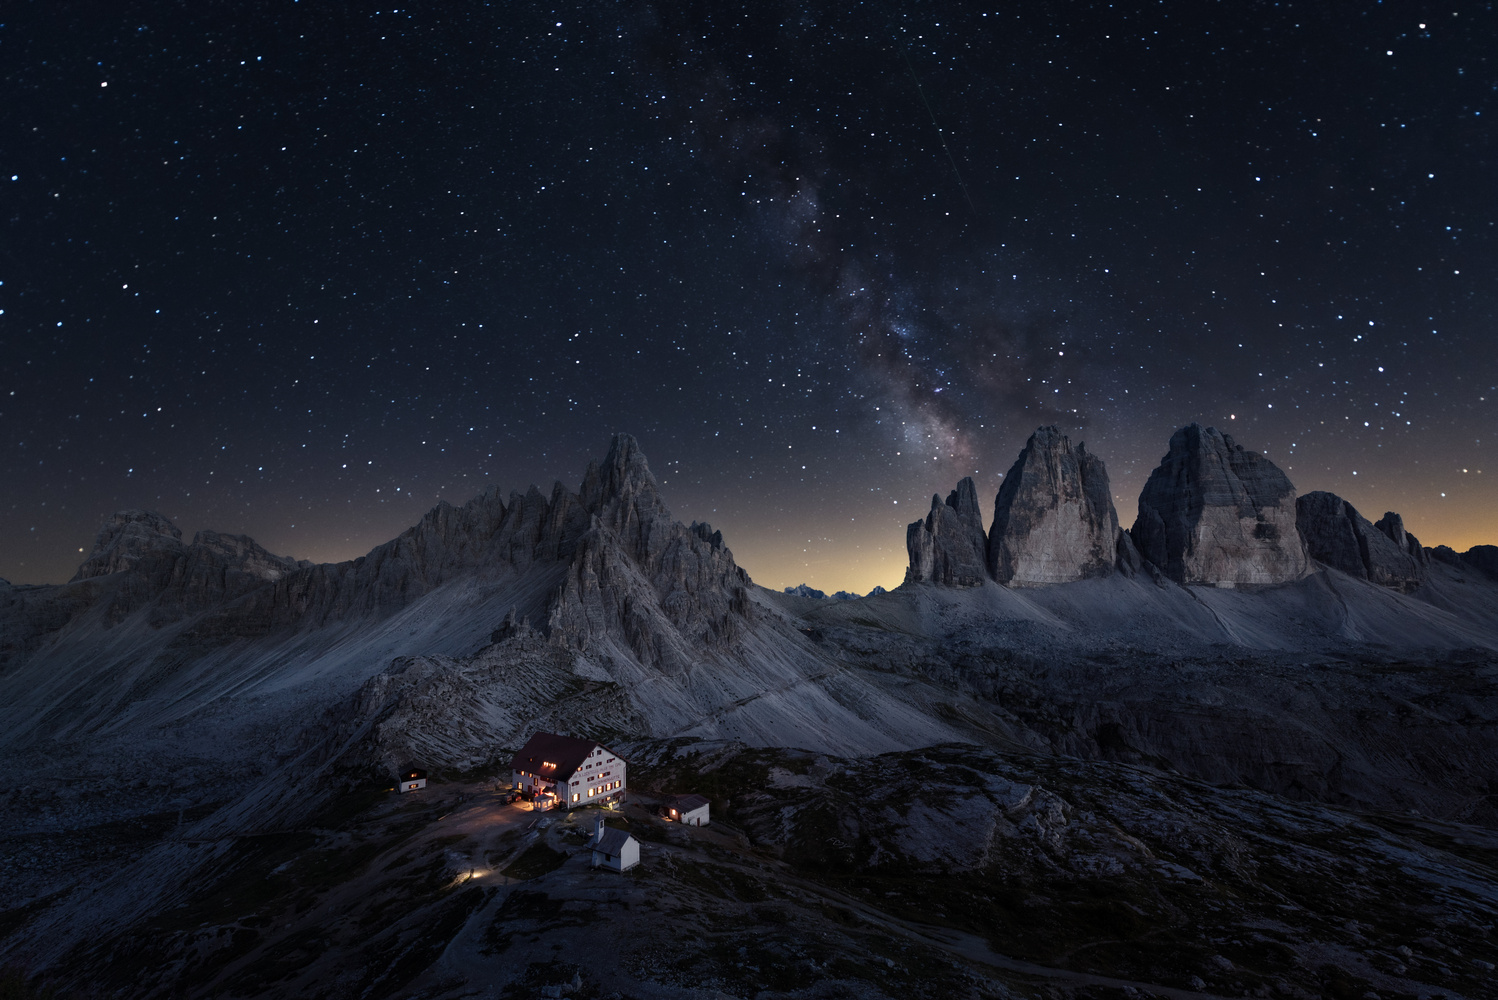 Three peaks and a million stars by Lukas Neuwirth